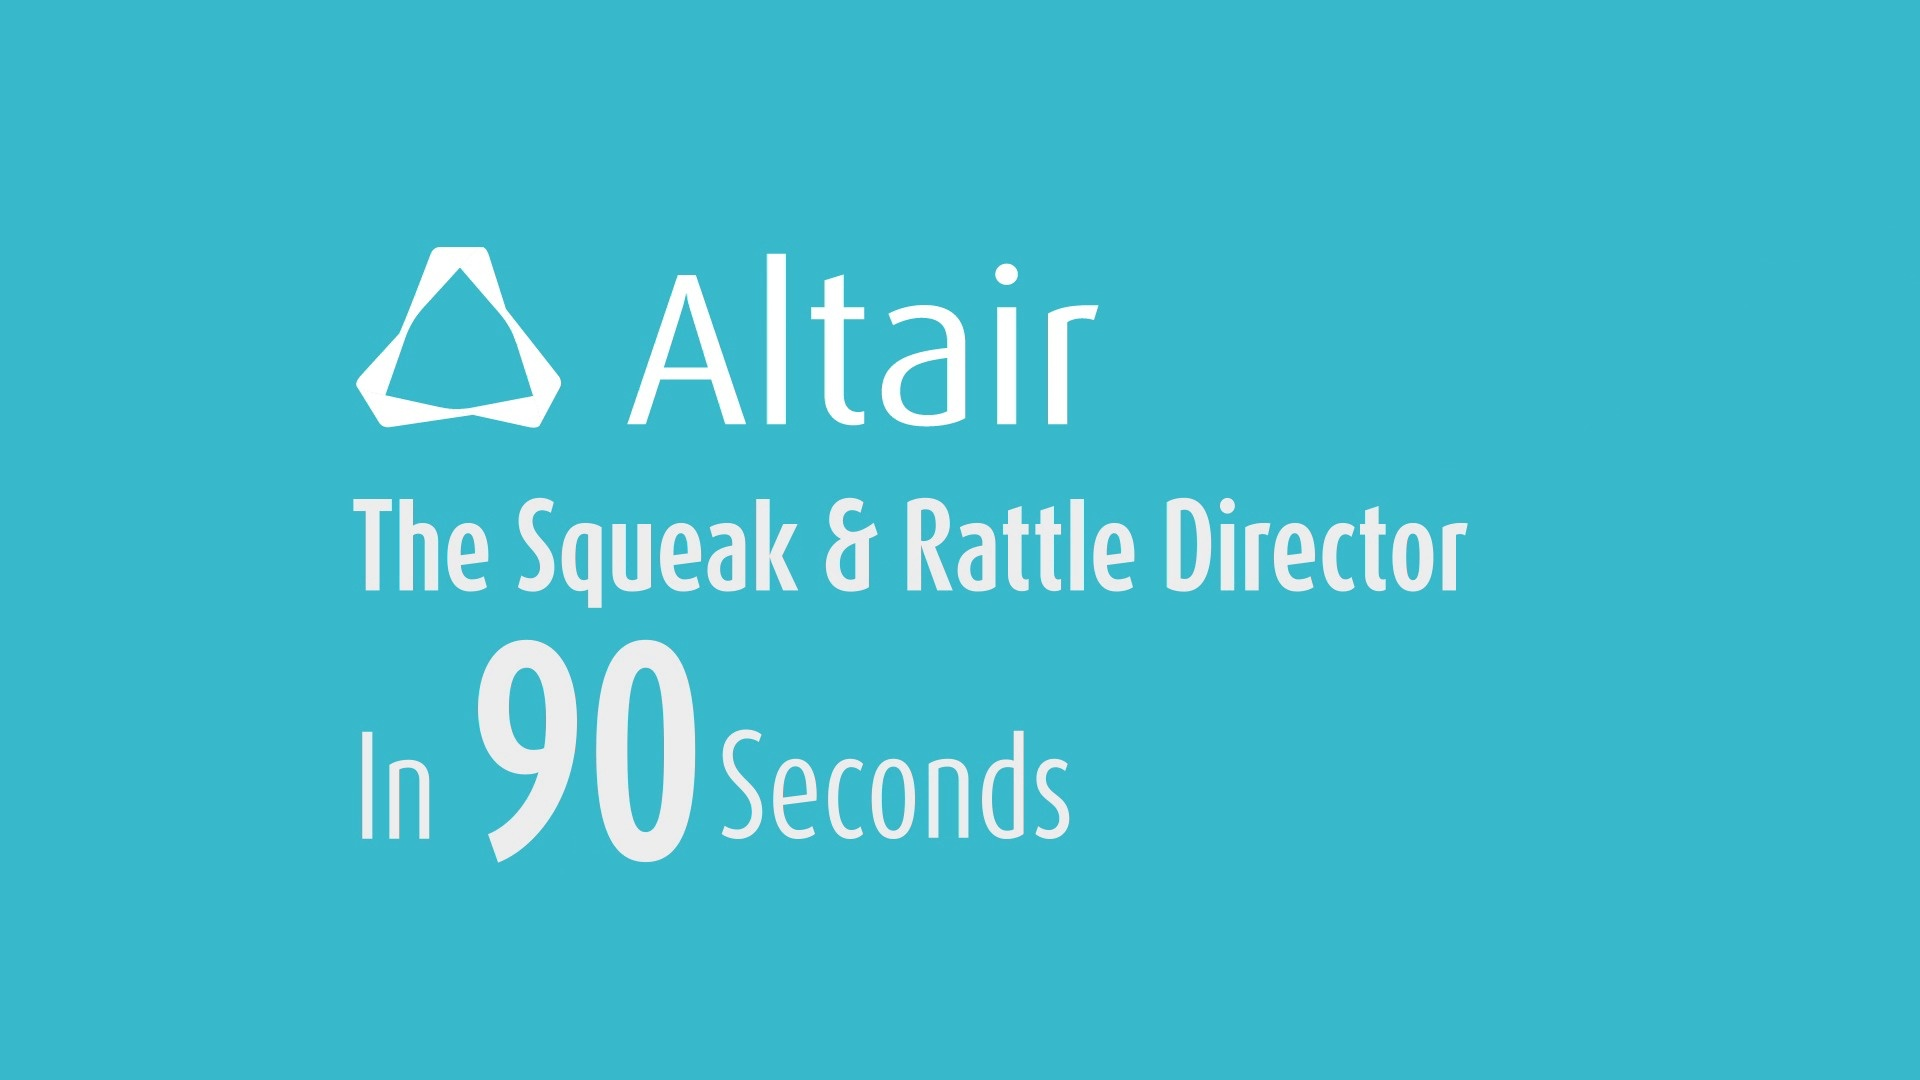 Altair Tailored Solutions Mouse Optick Voltre Wistia Video Thumbnail